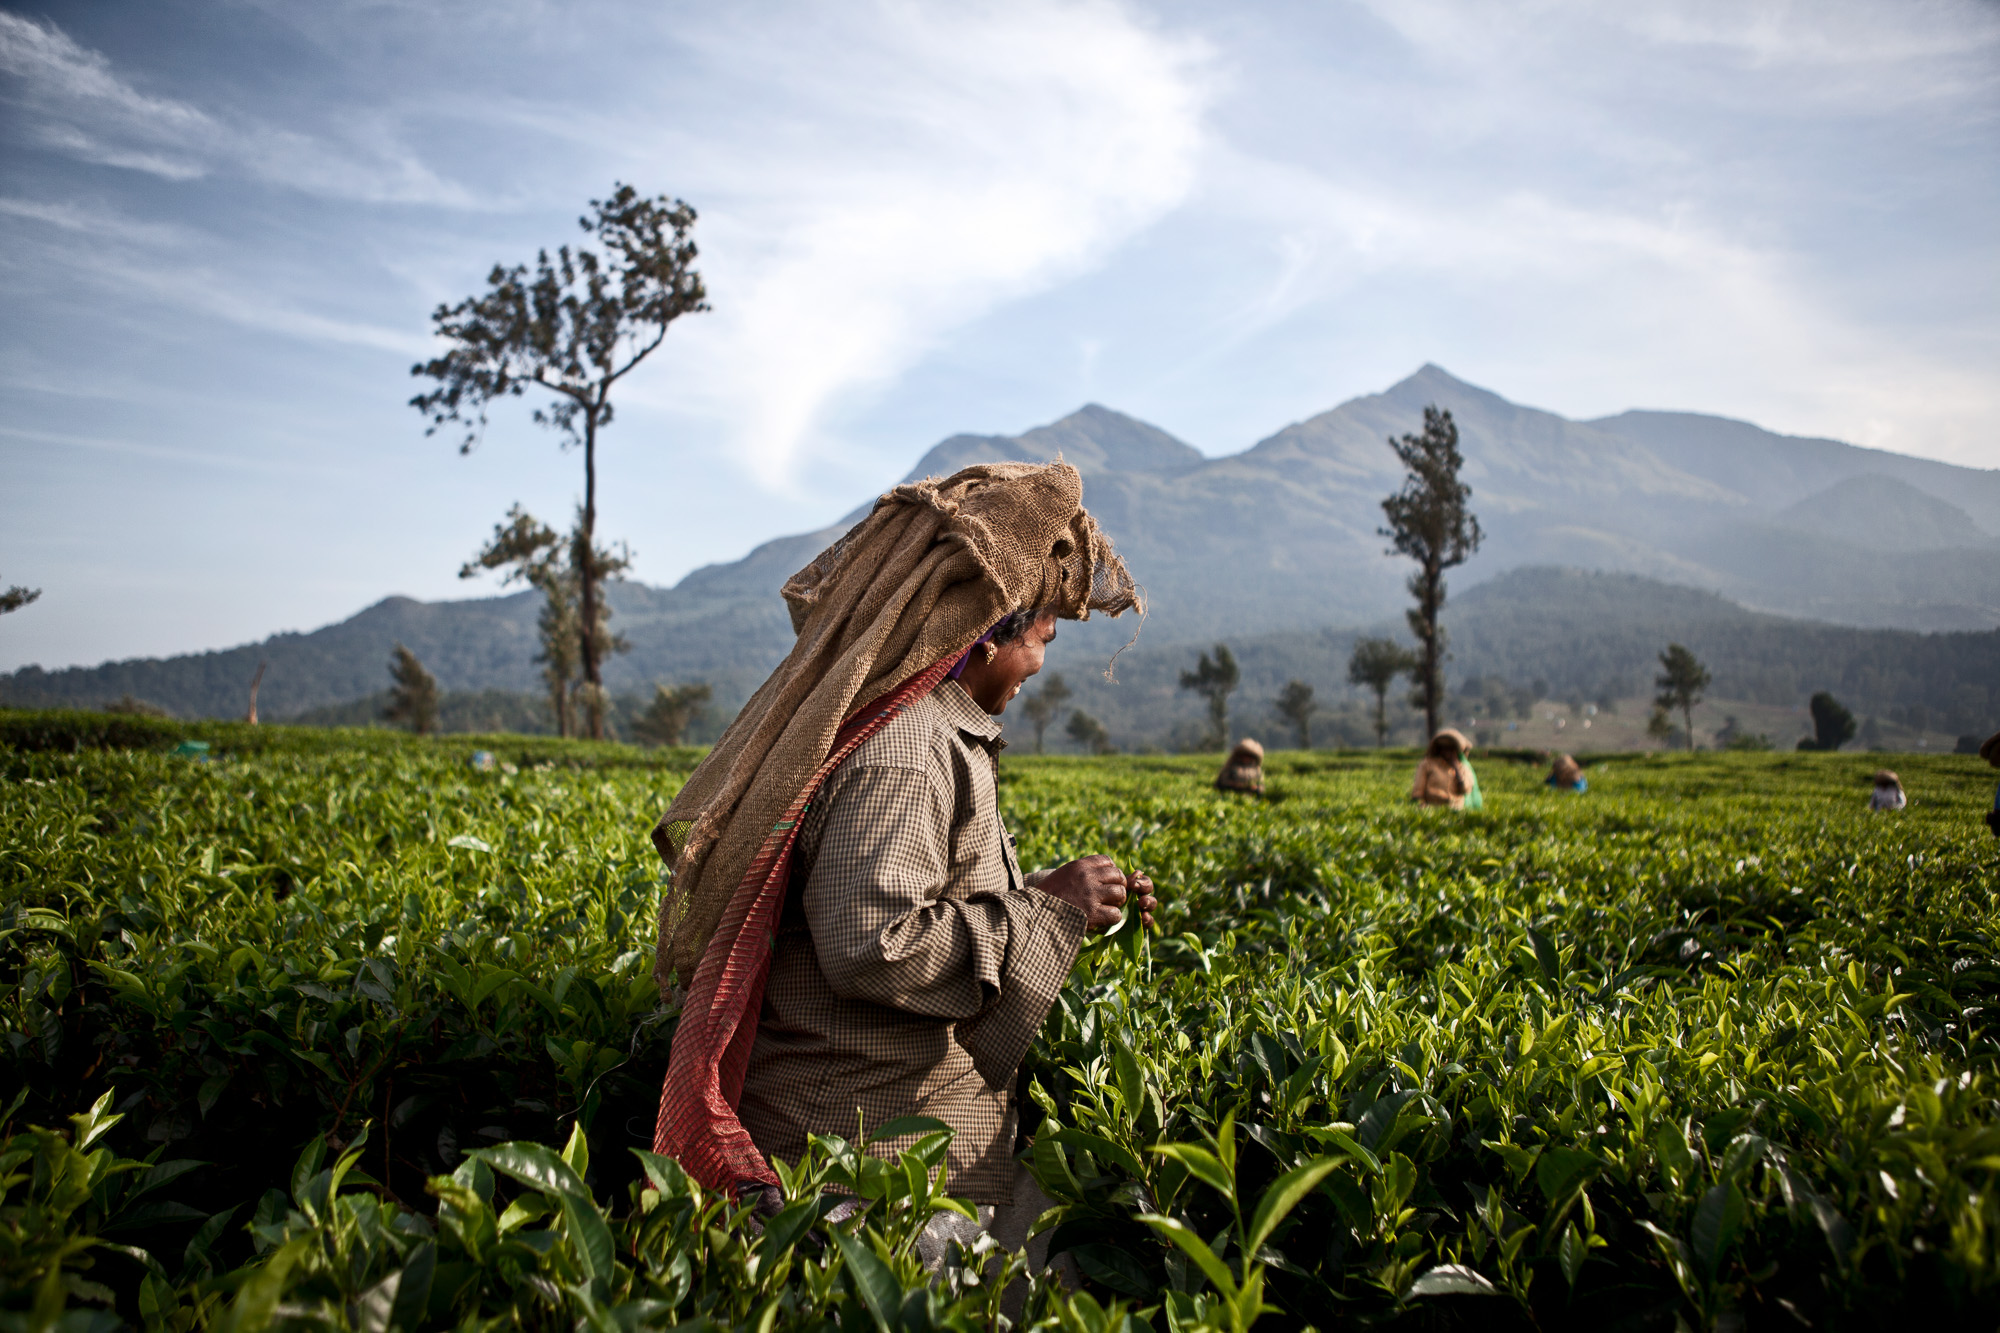 A female tea plucker working in one of the vast tea fields on the estate.  The women are expected to pick 23kg per day and work a 6 day week.  Traditionally this is a lowly paid job dominated by women.